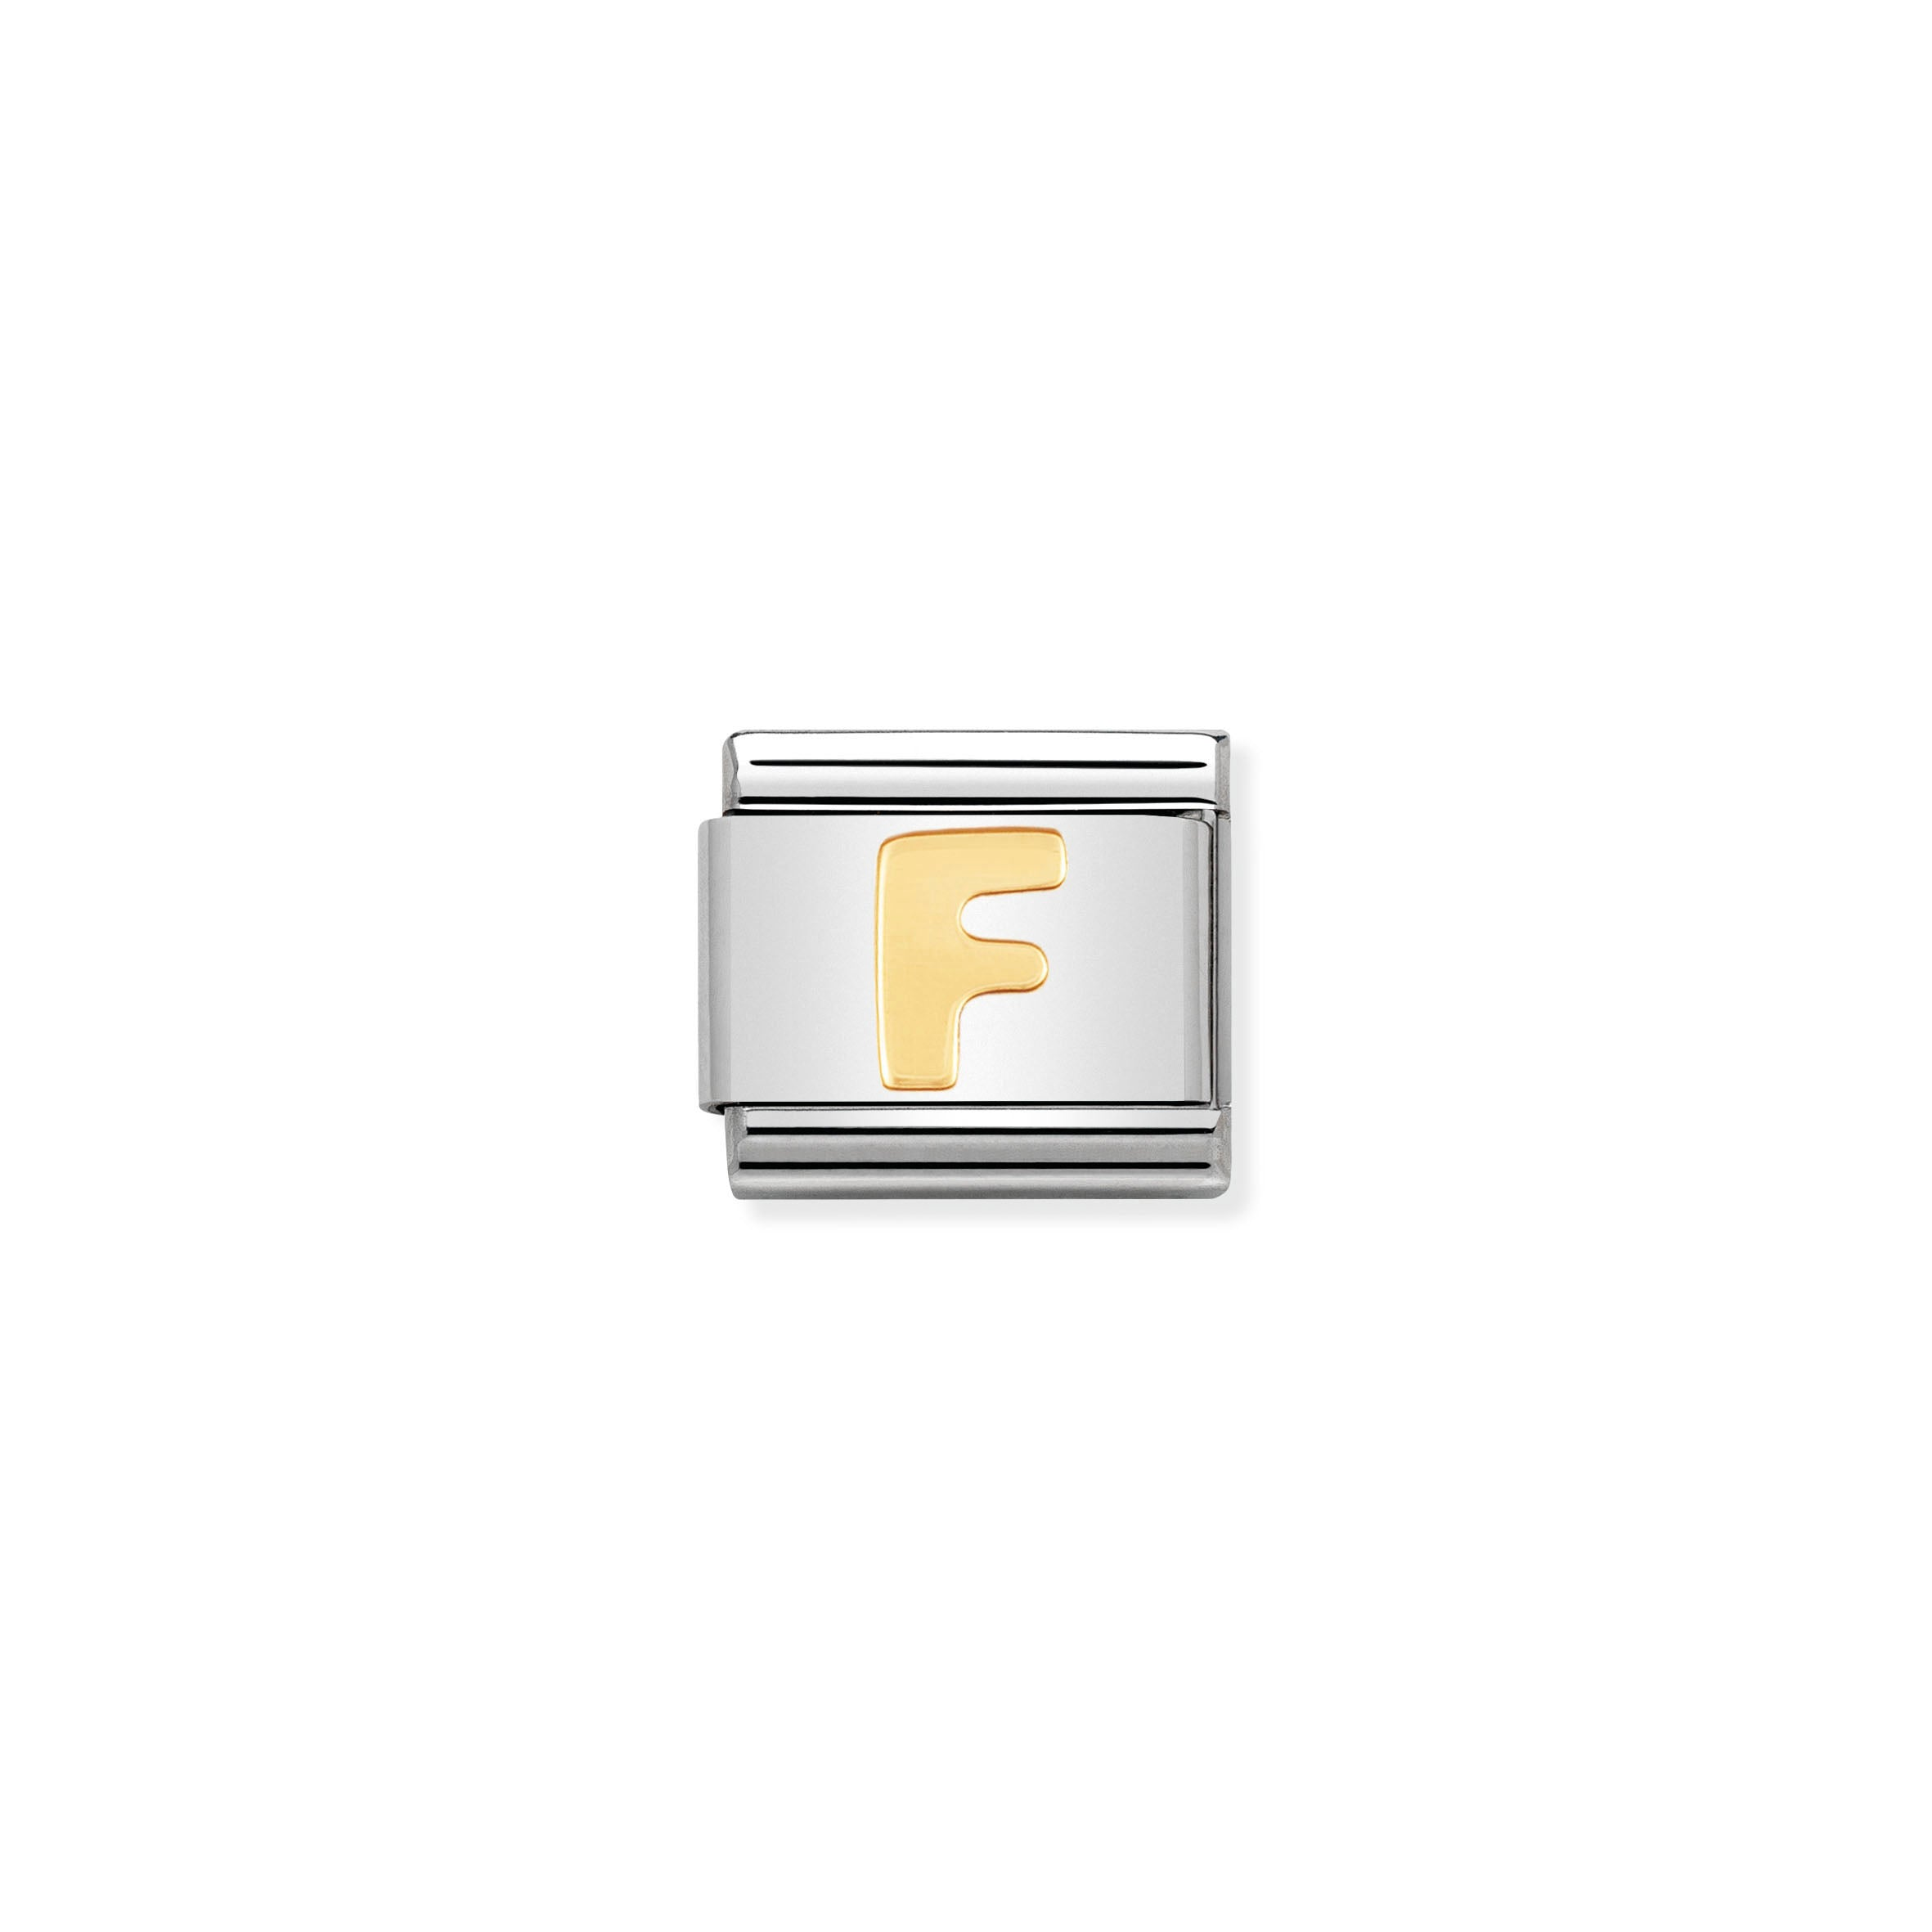 NOMINATION - Composable Steel & Gold Letter 'F'